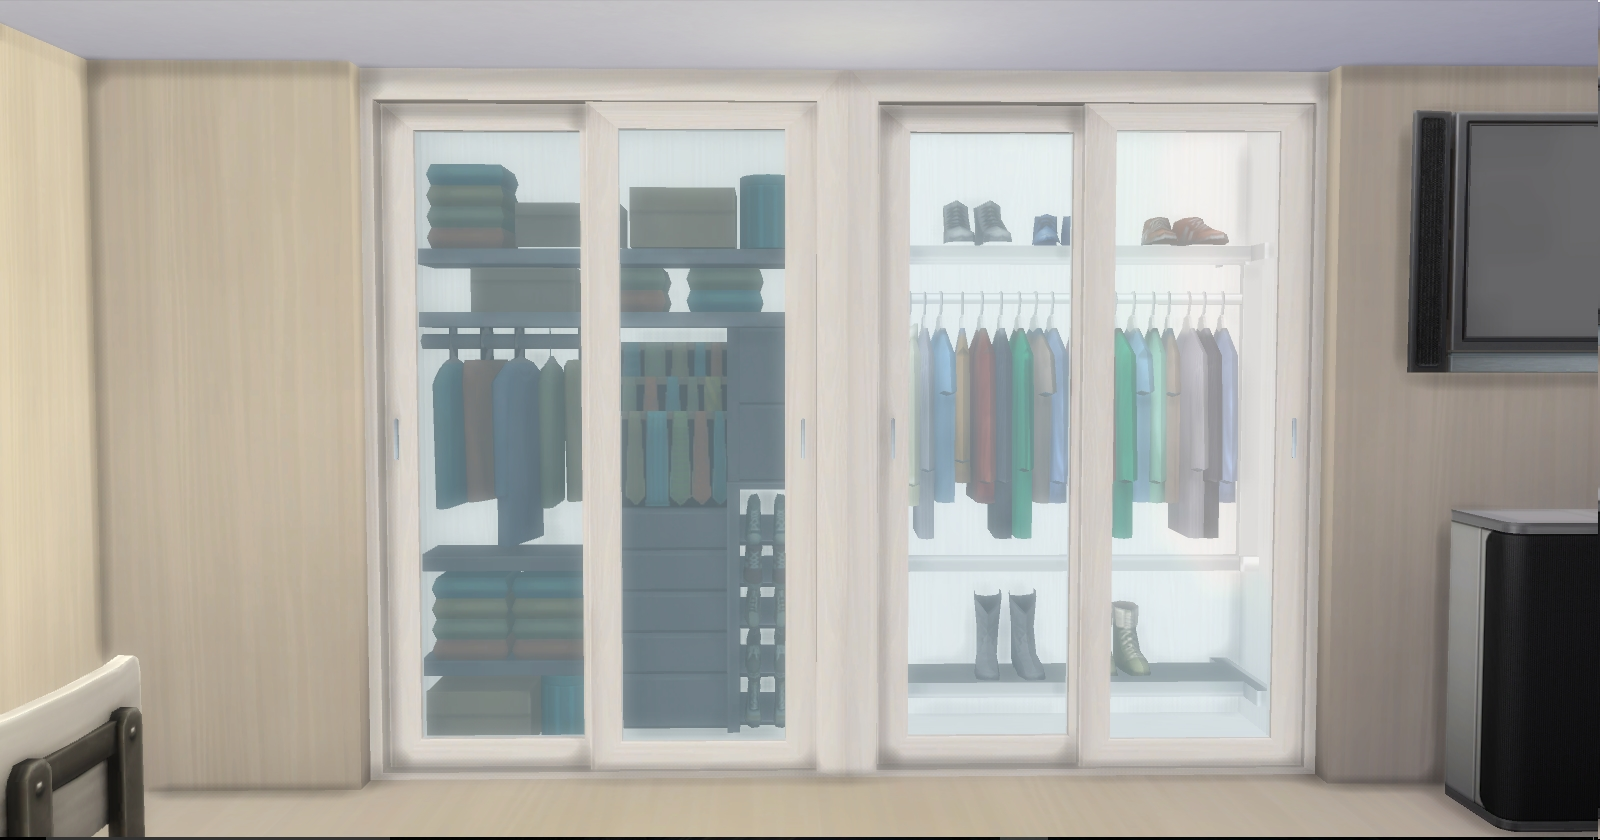 Mod The Sims - Display Wardrobe